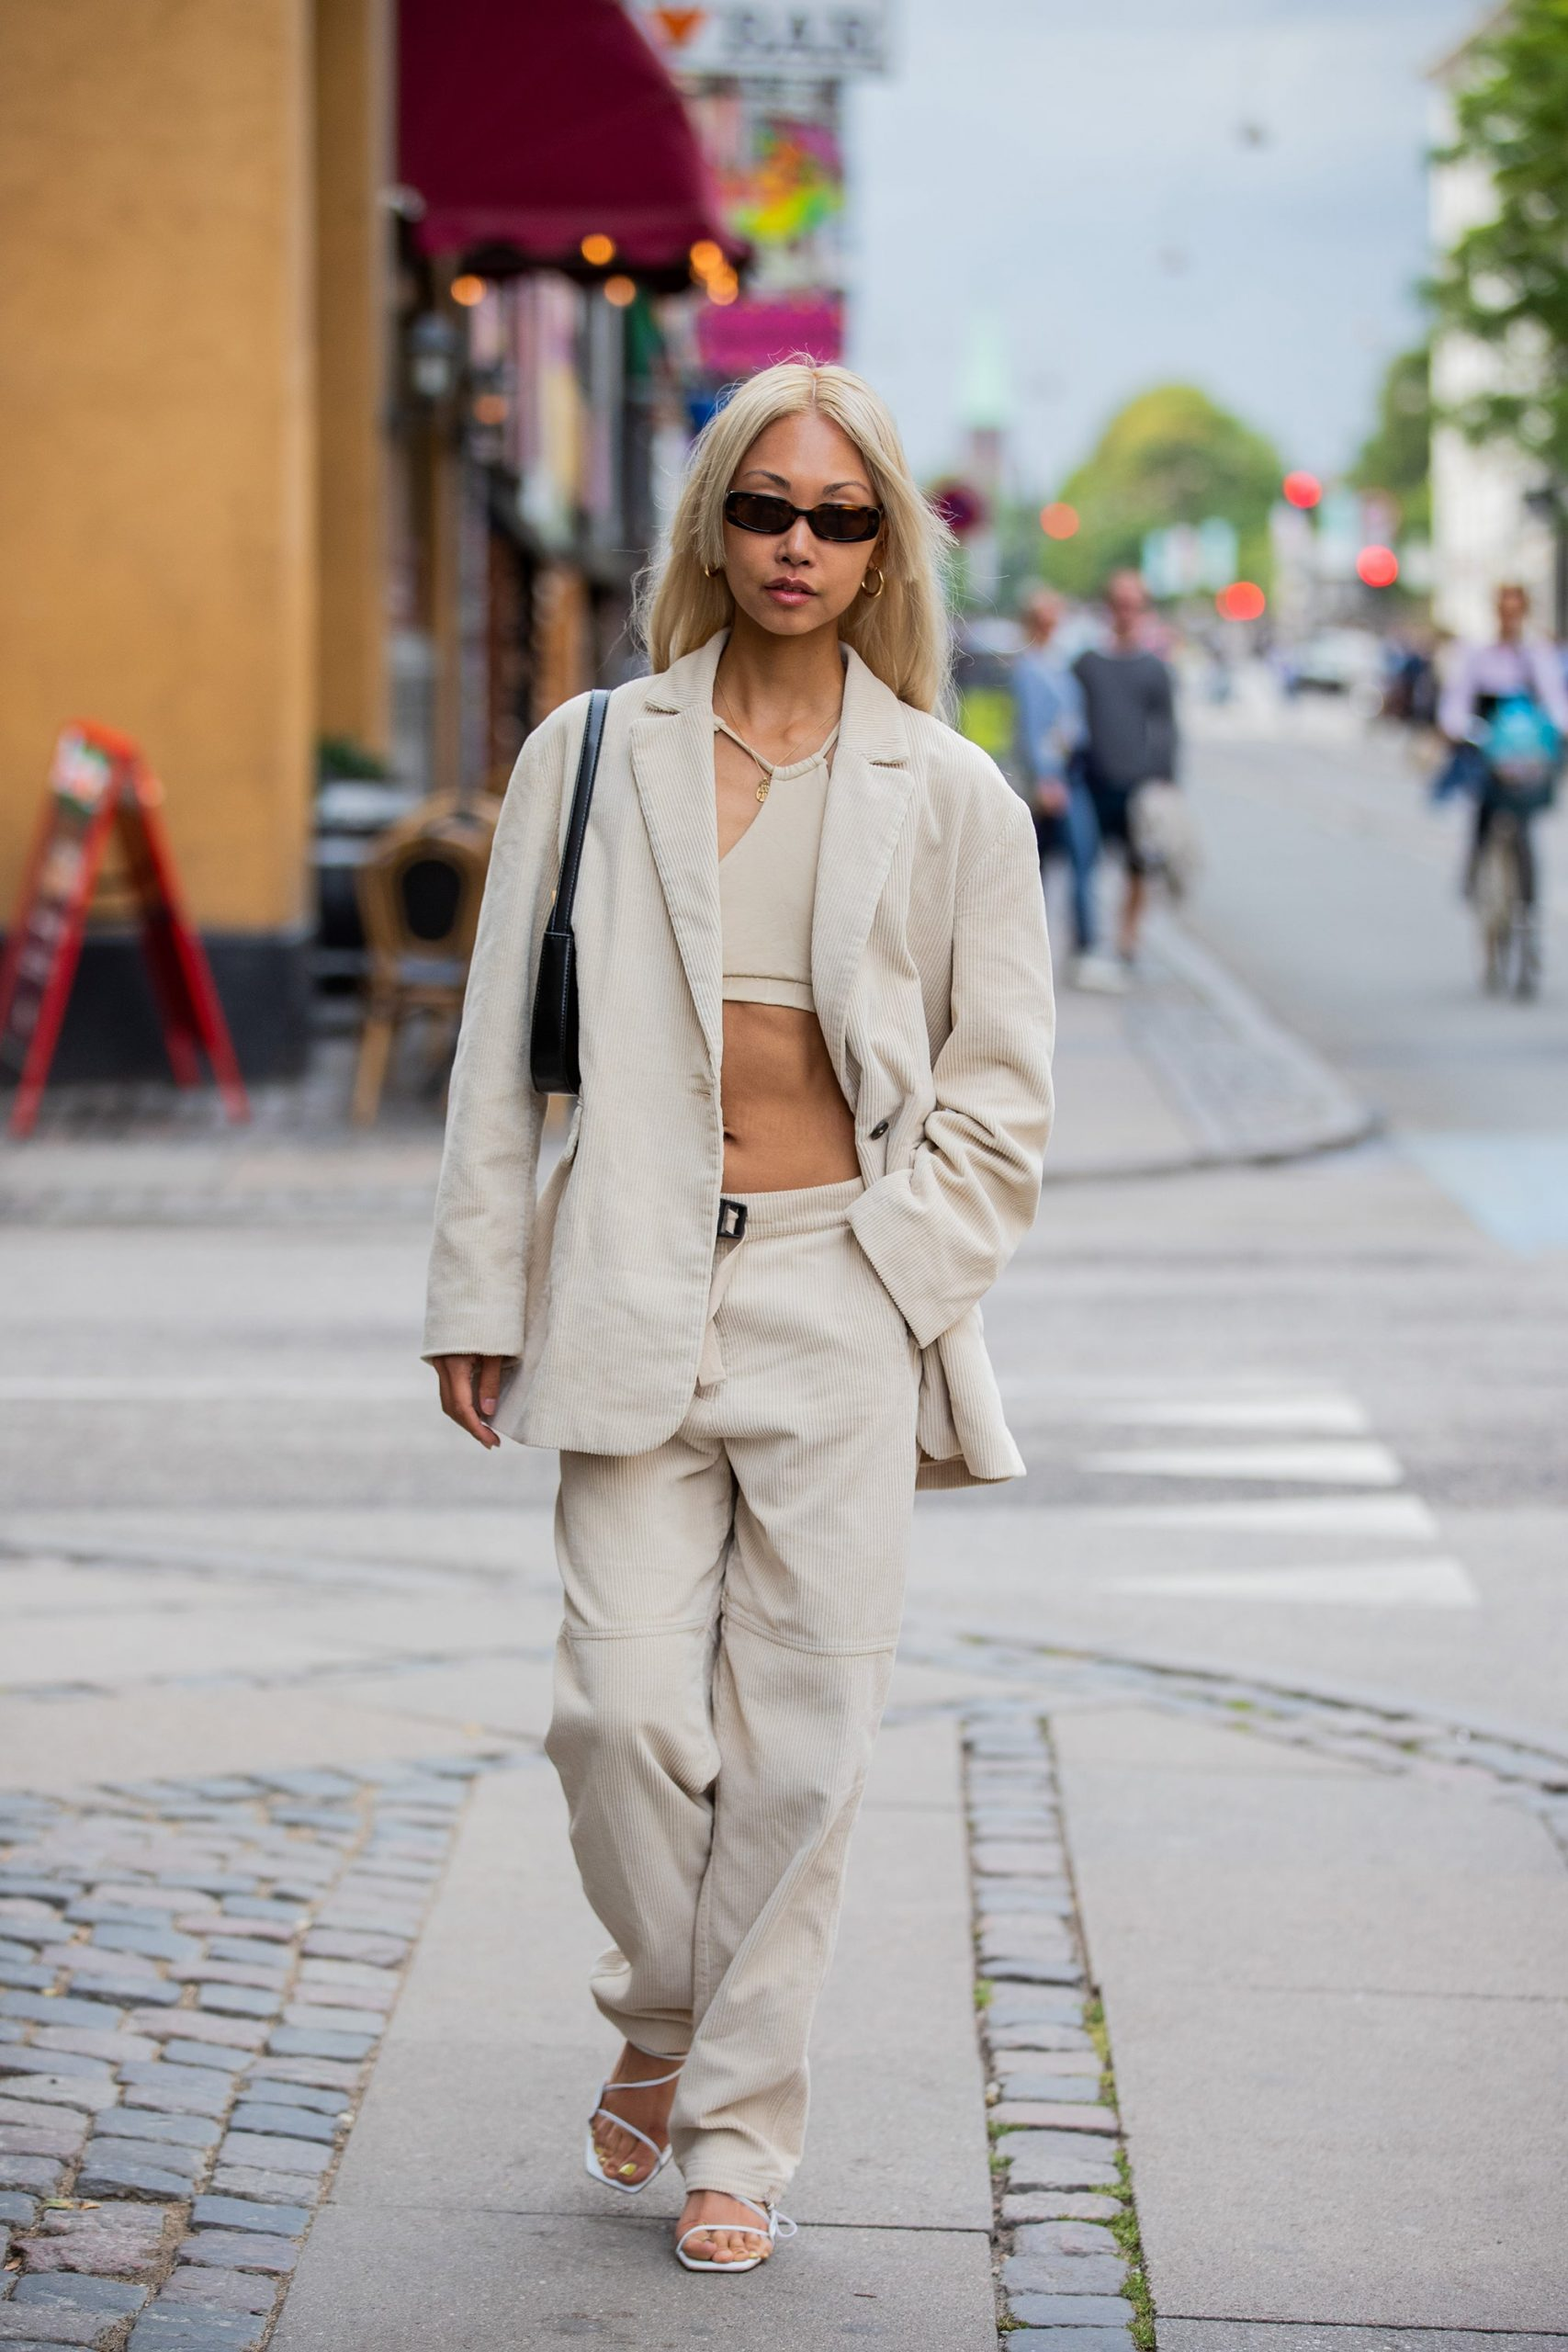 Suiting Stole The Show On The Streets At Copenhagen Fashion Week